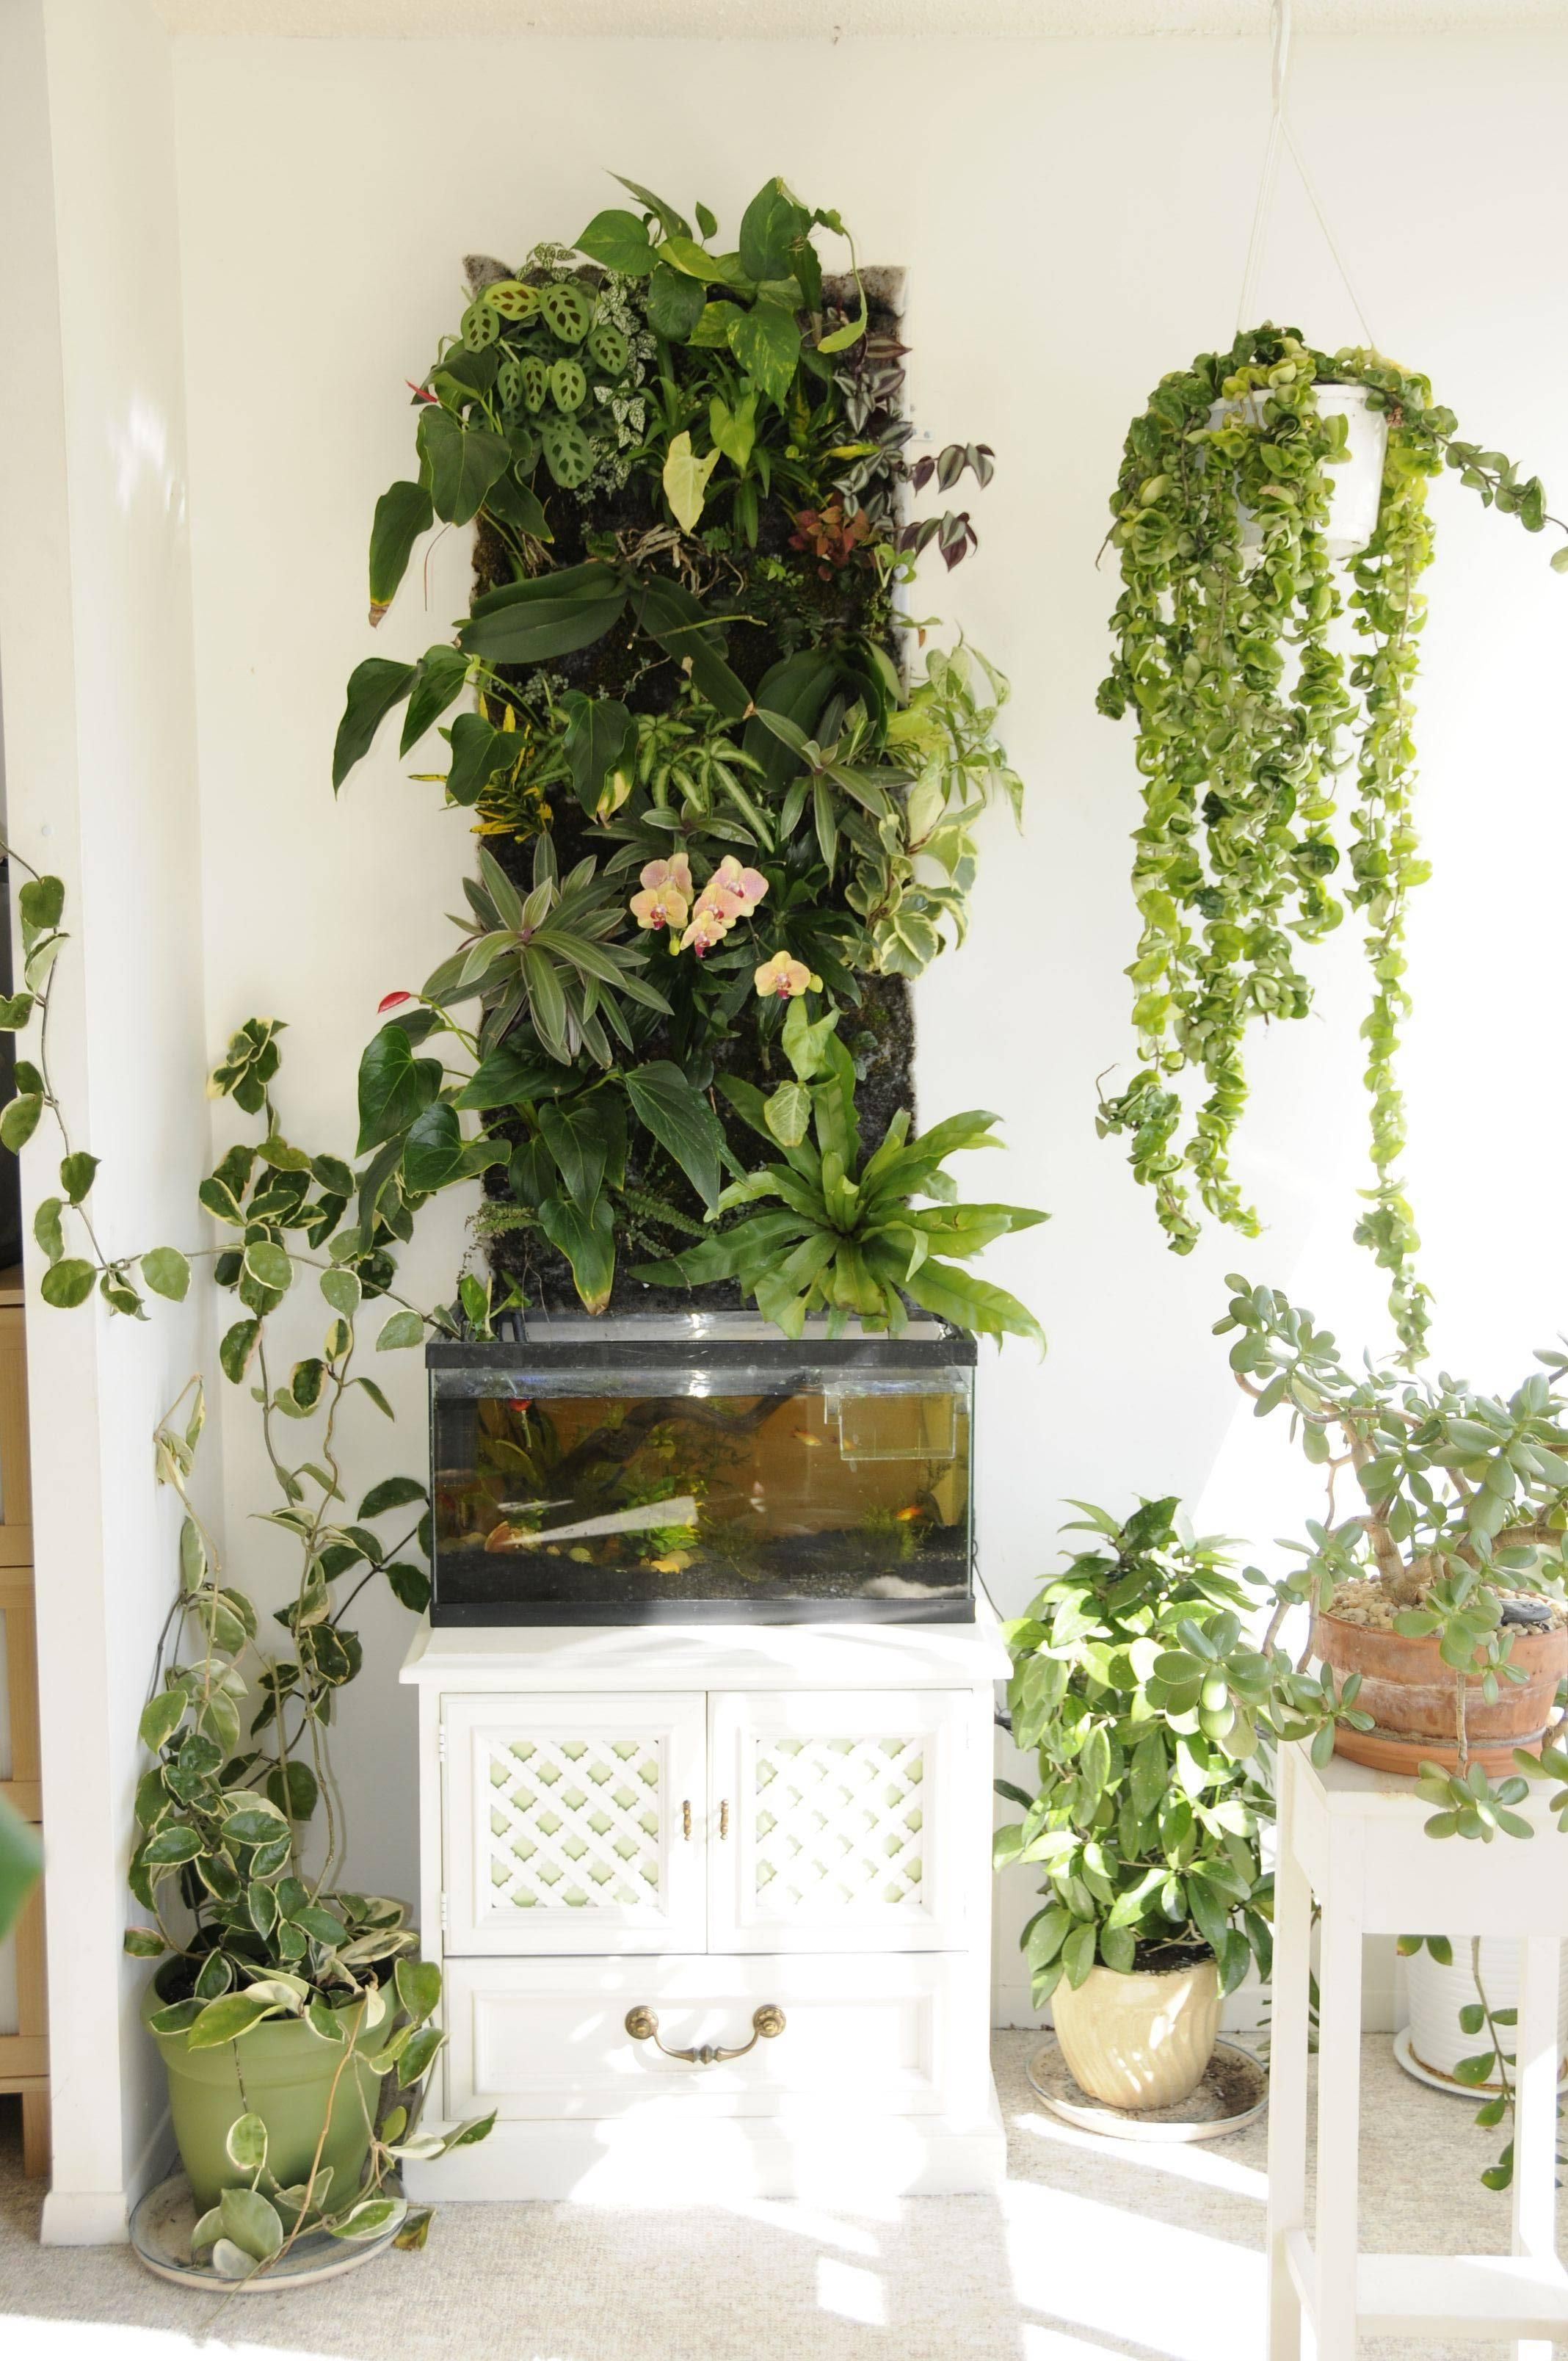 The Green Wall & Other Living Things  Imgur